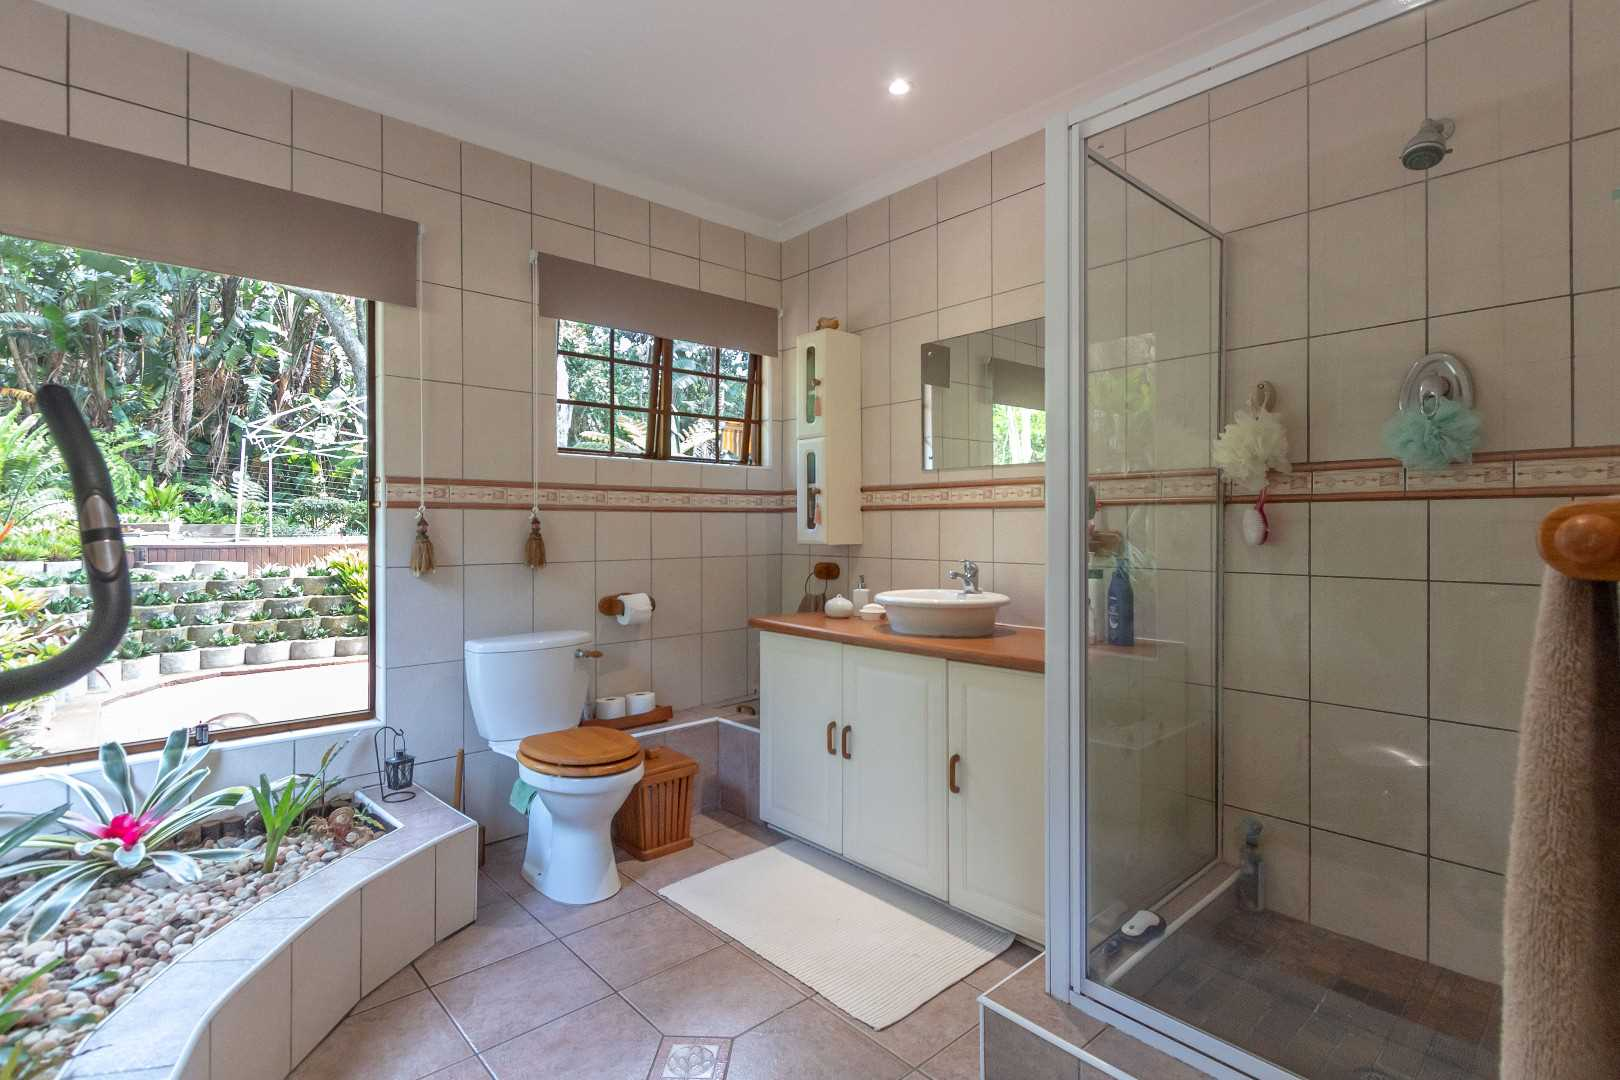 Bring nature into your shower